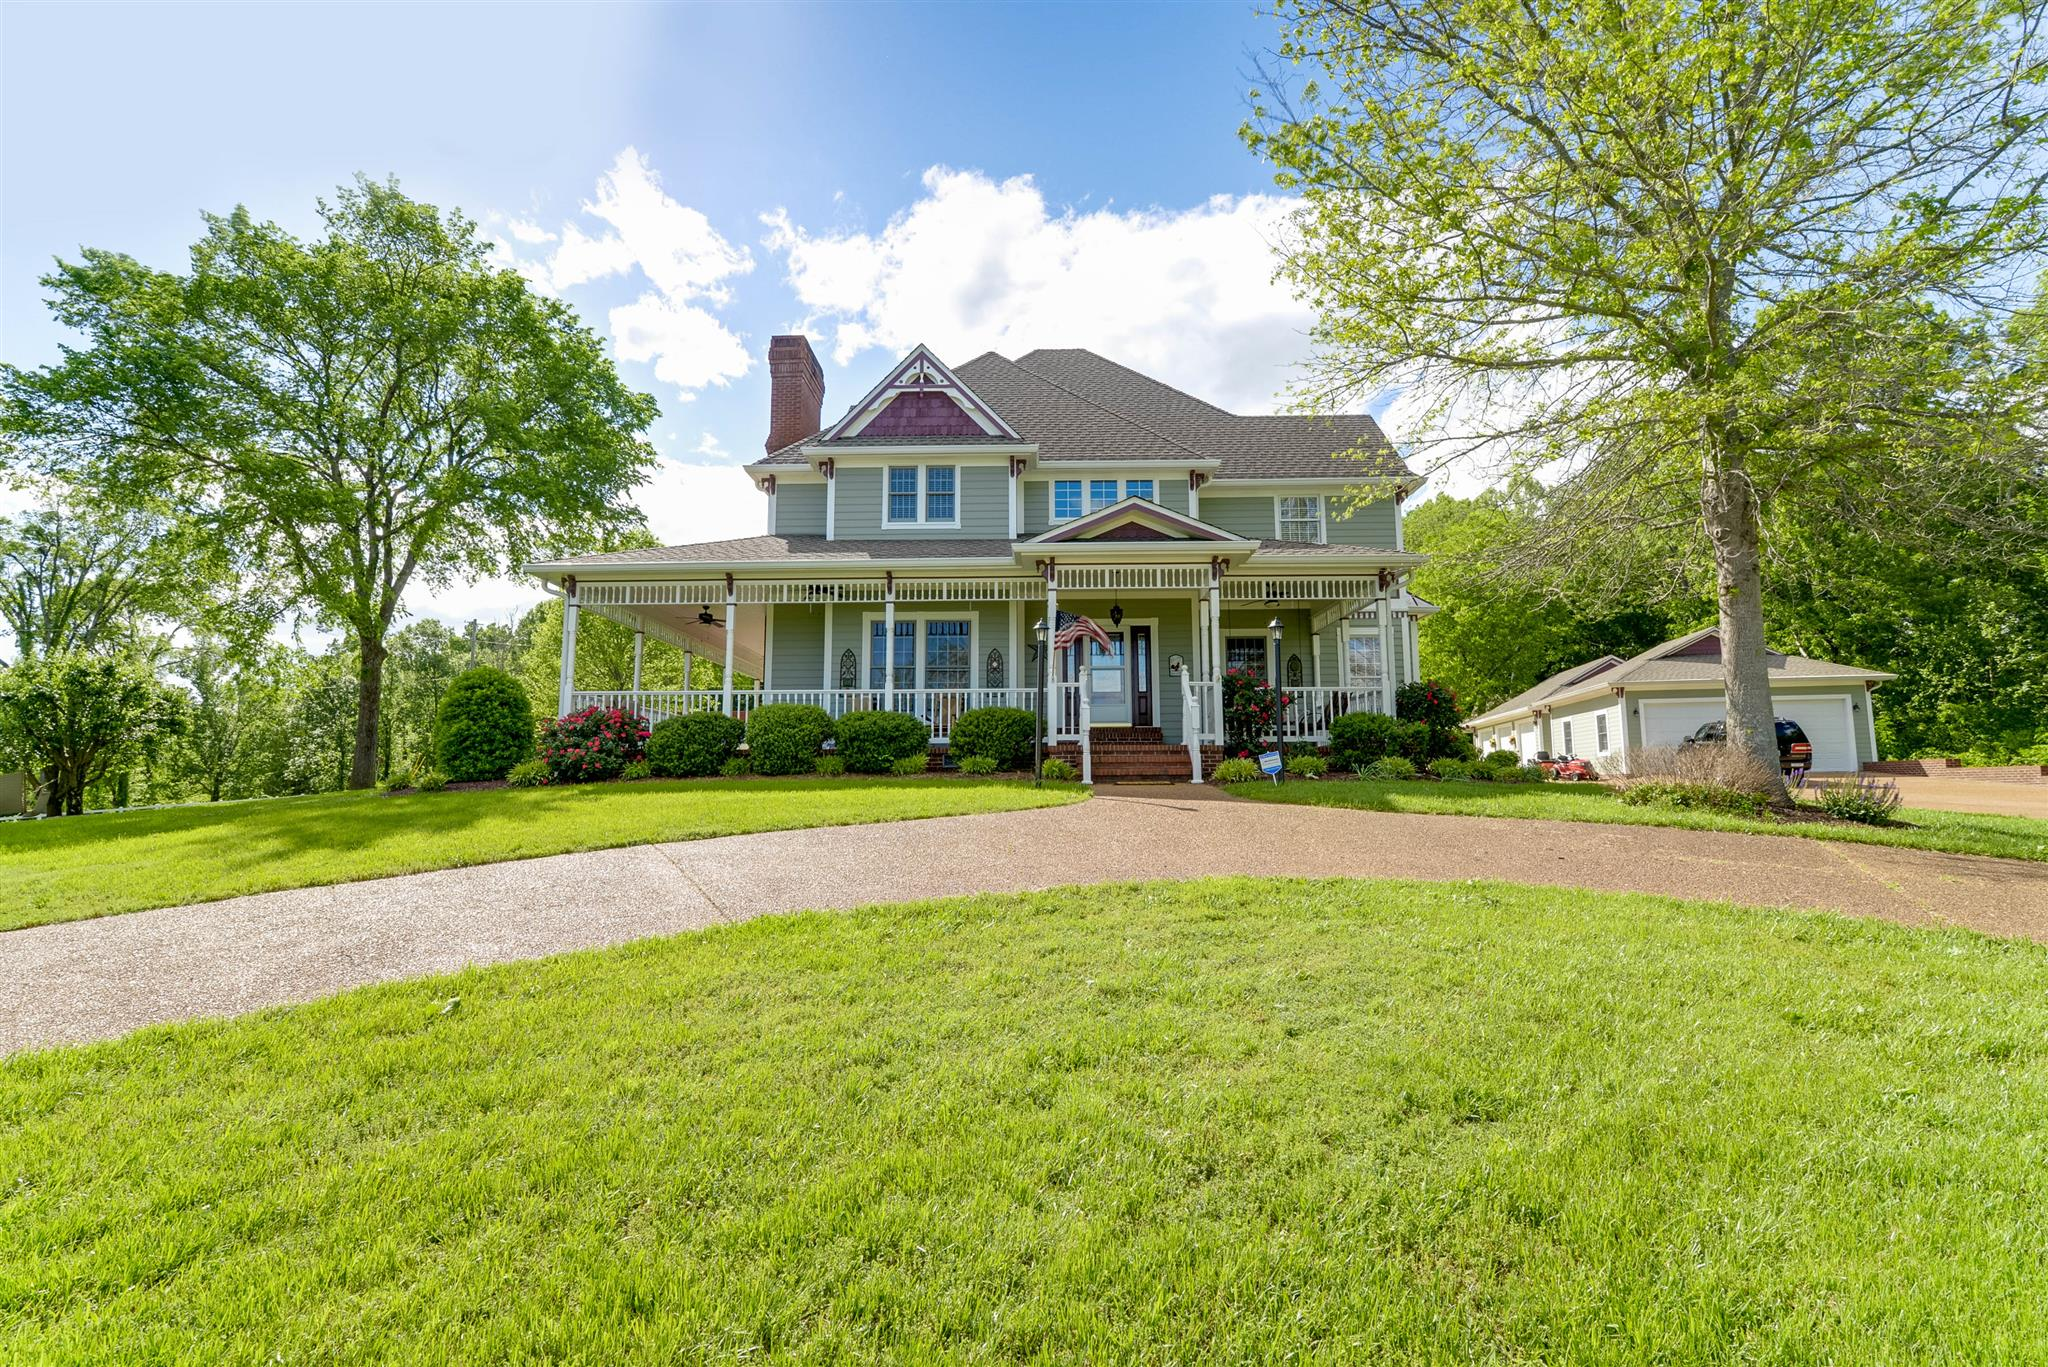 34 Luther Allen Ln, BRUSH CREEK, TN 38547